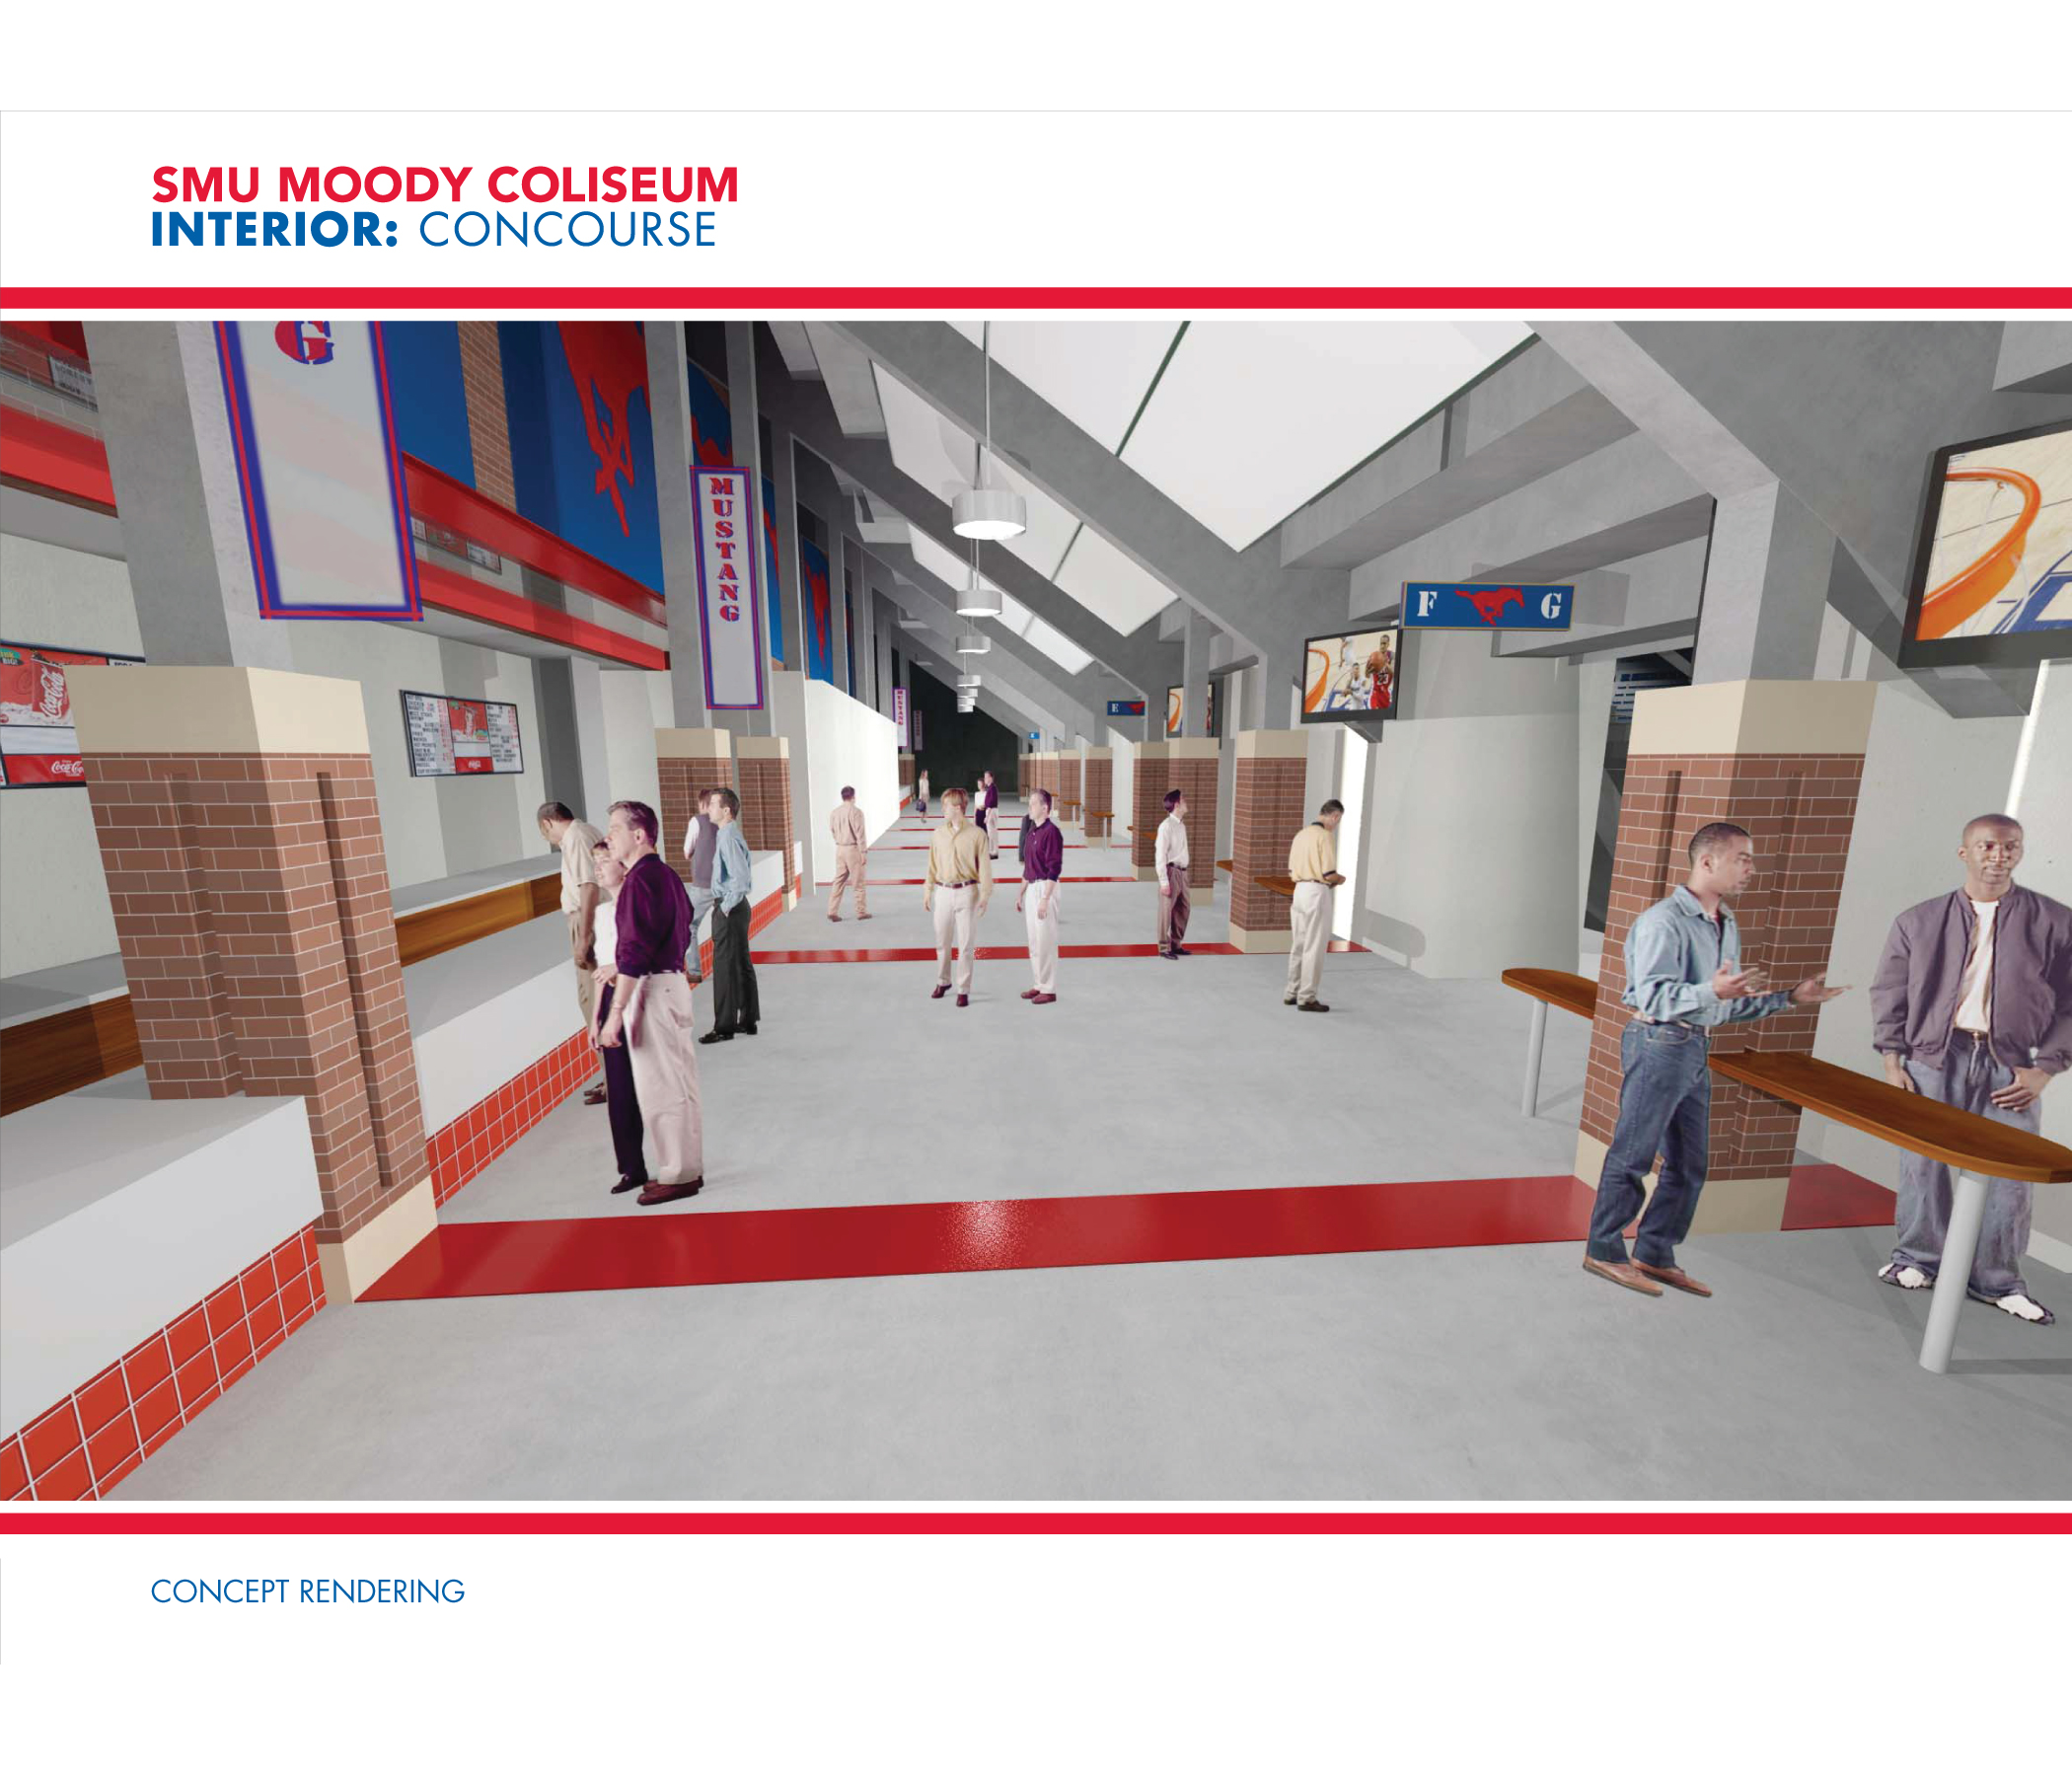 Rendering of the Interior Concourse for SMU's Moody Coliseum